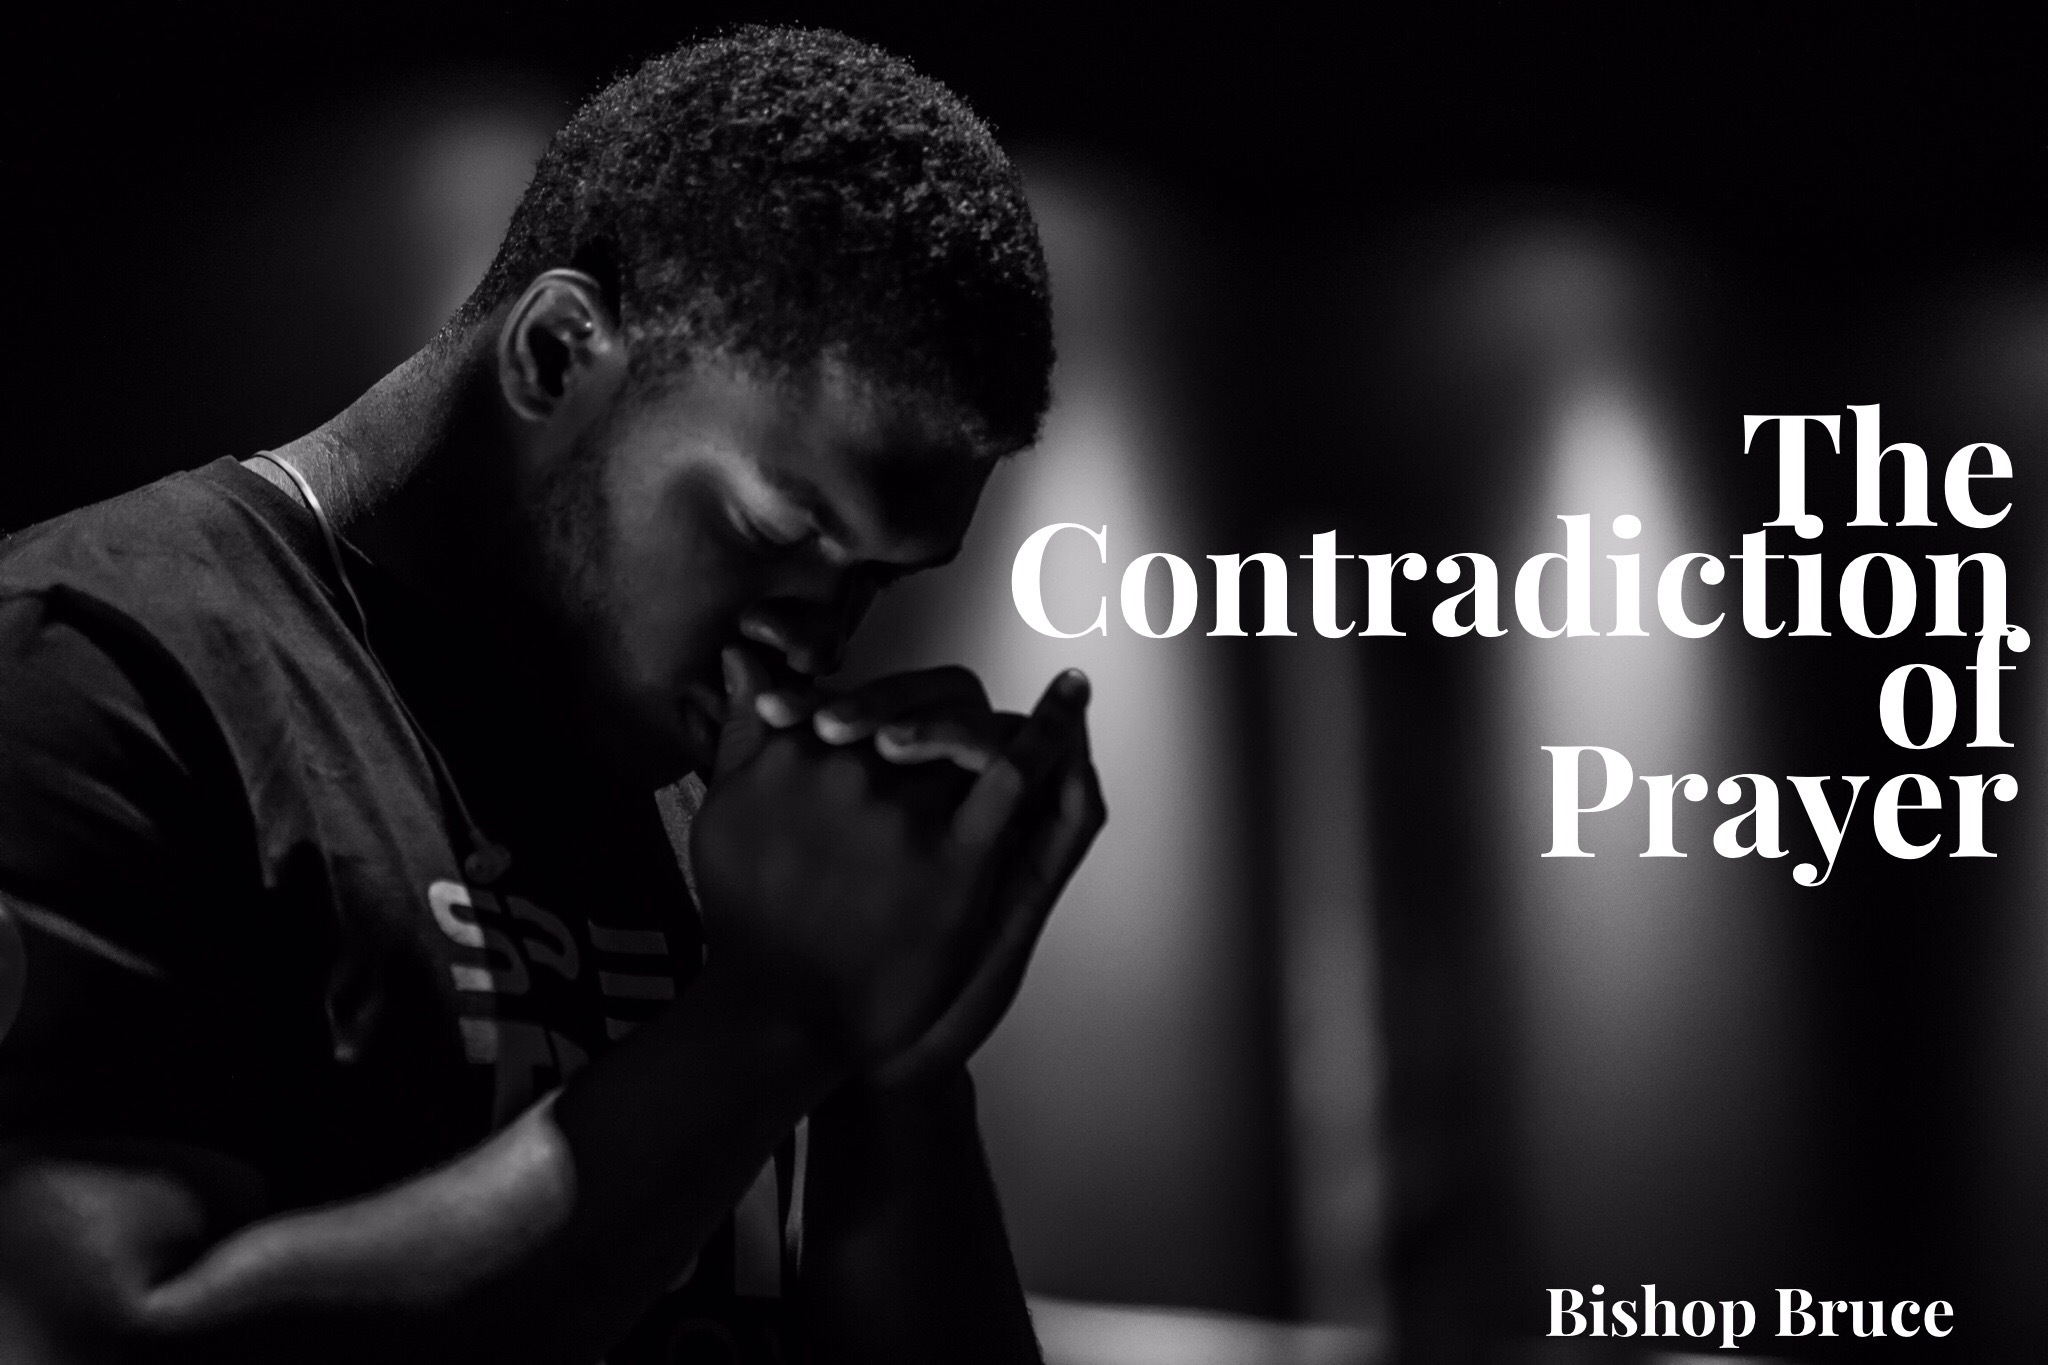 The Contradiction of Prayer